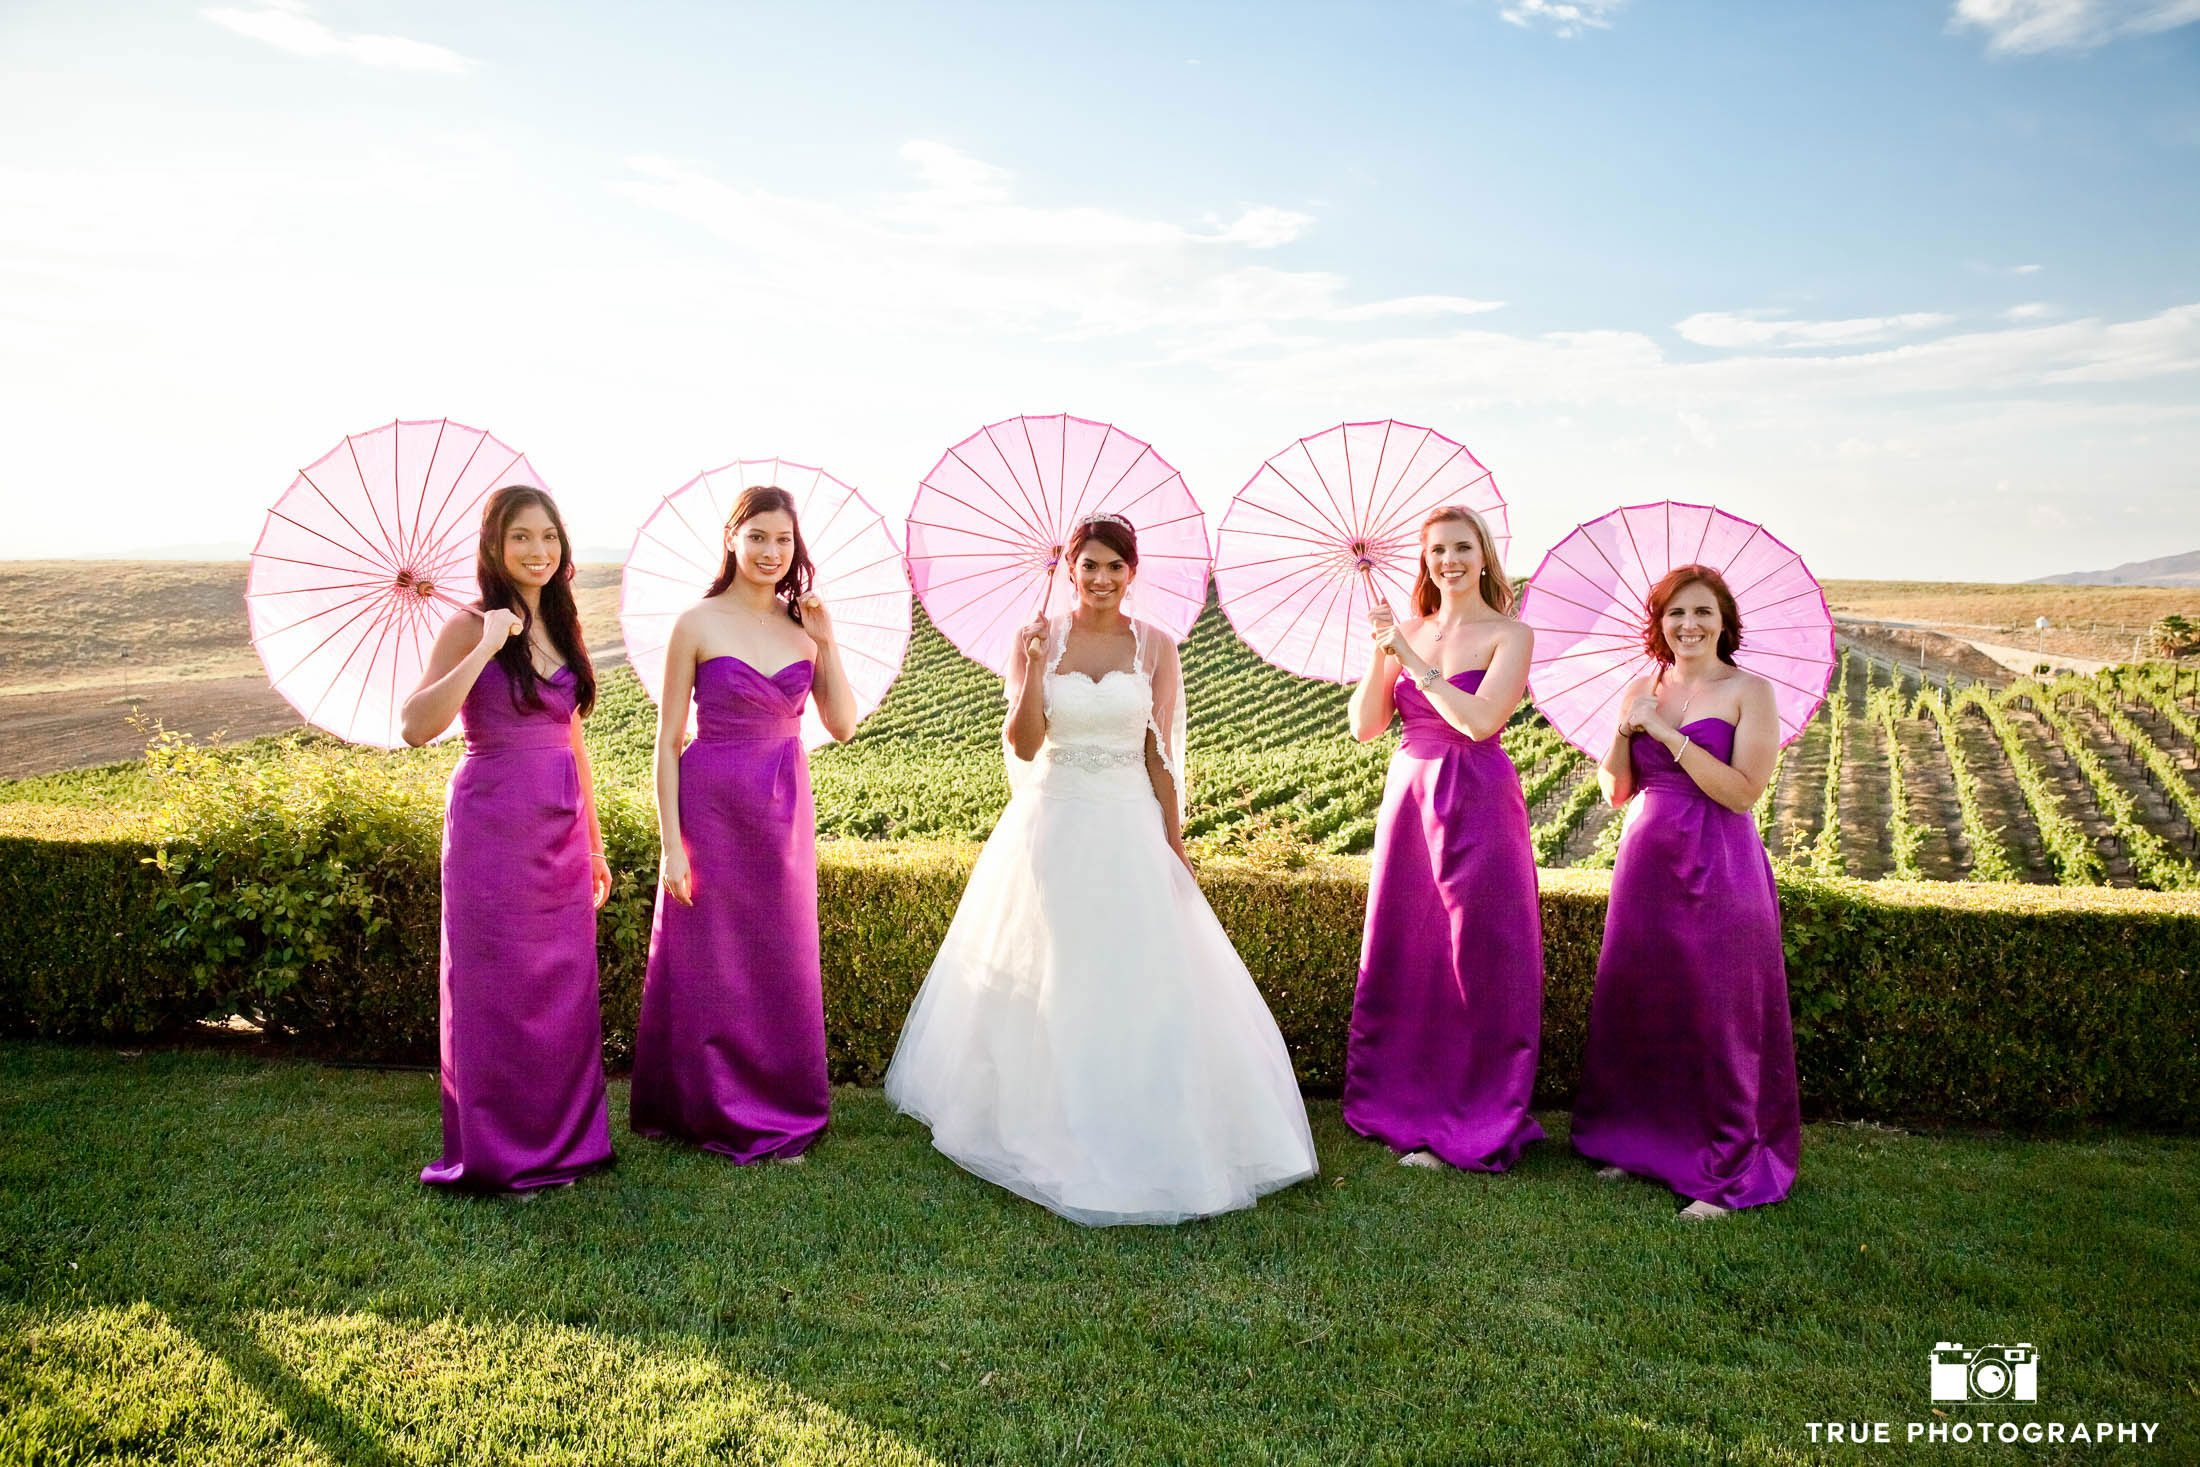 Bridesmaid with parasol umbrellas in vineyard